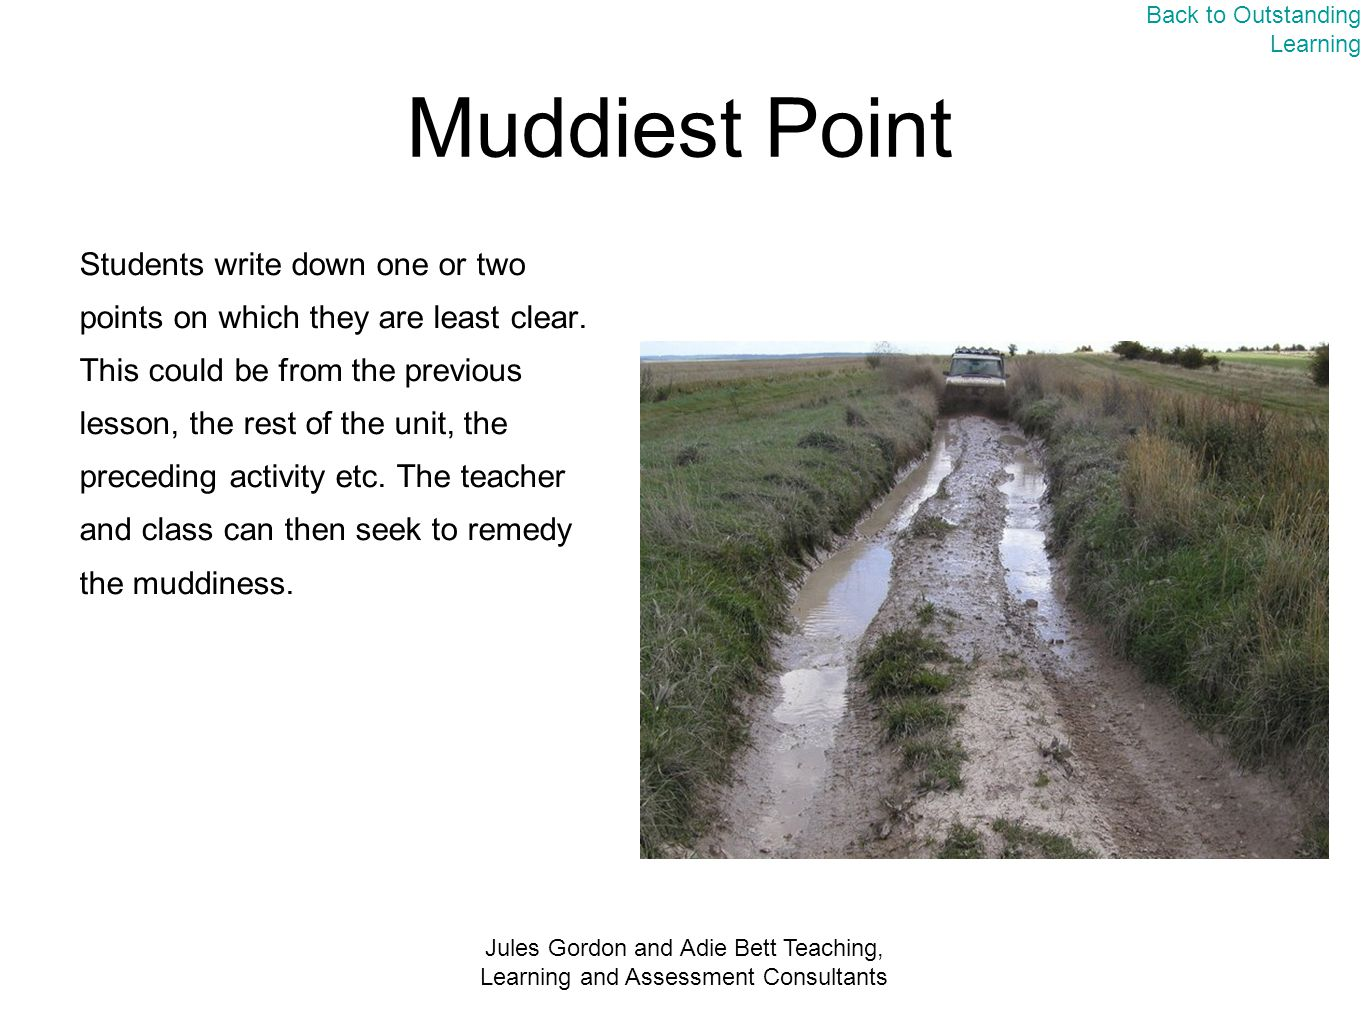 Jules Gordon and Adie Bett Teaching, Learning and Assessment Consultants Muddiest Point Students write down one or two points on which they are least clear.